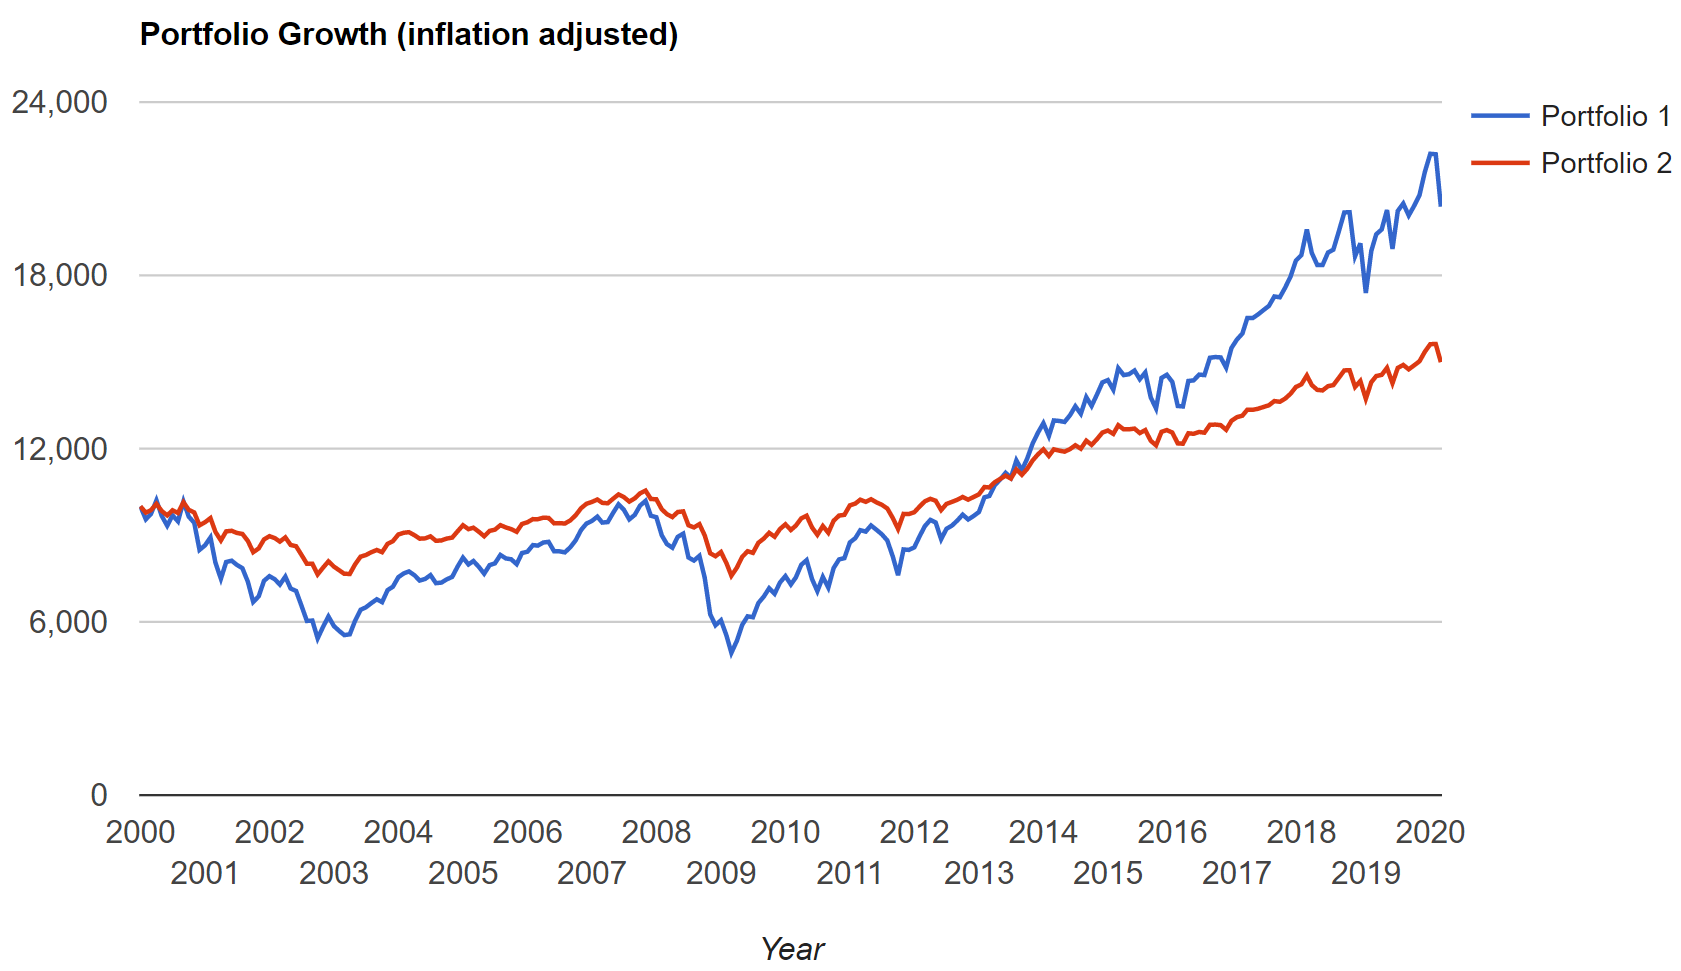 Inflation-adjusted growth of portfolios in the 2000s